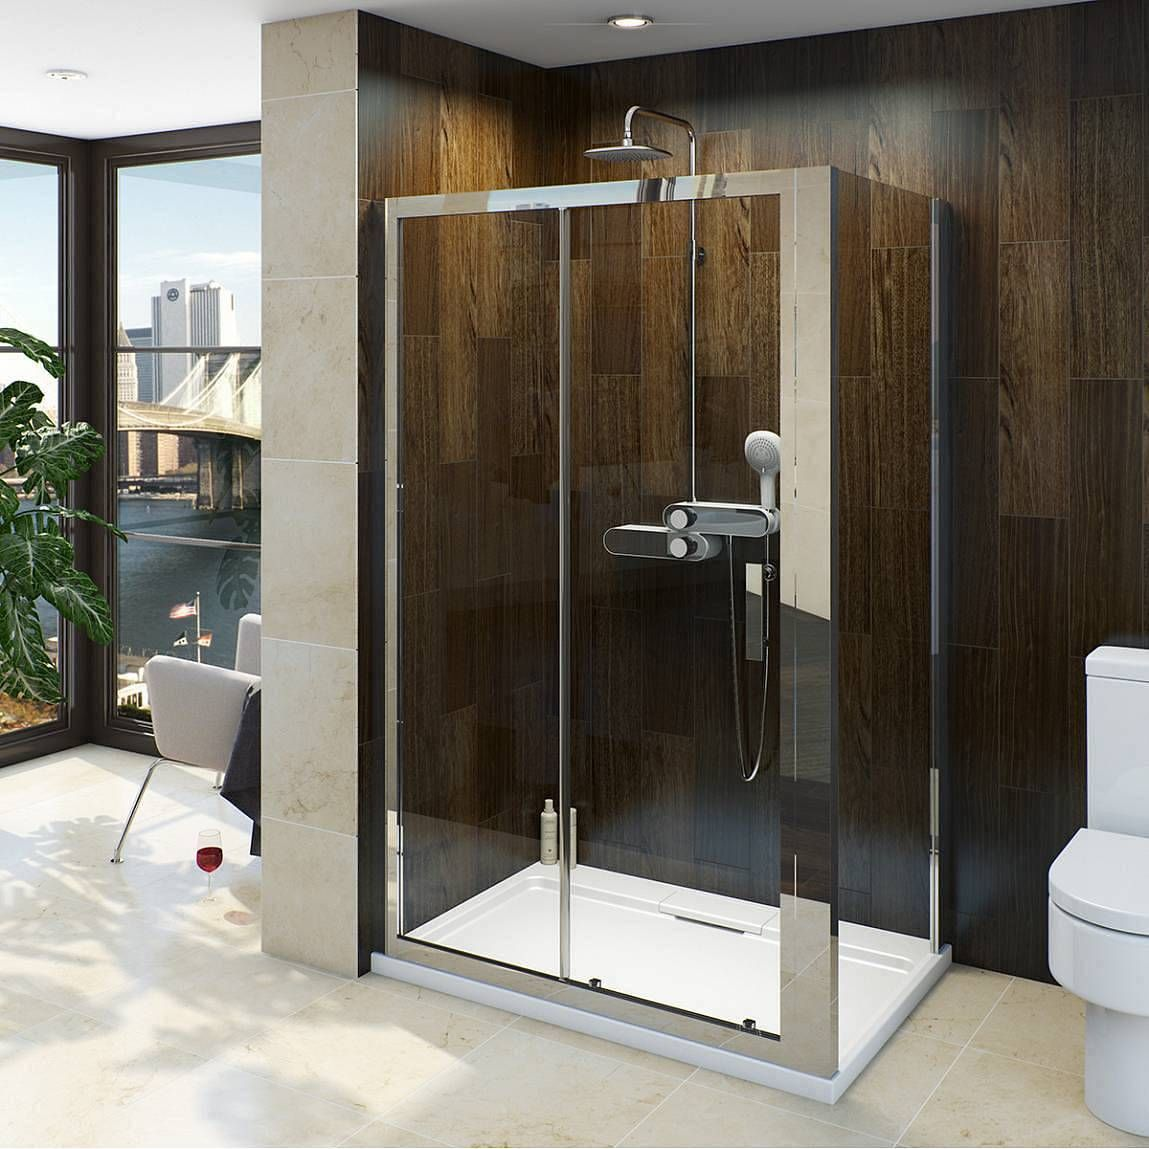 V8 8mm Framed Sliding Shower Enclosure 1000 X 700 Victoria Plumb Sliding Shower Door Shower Doors Shower Enclosure